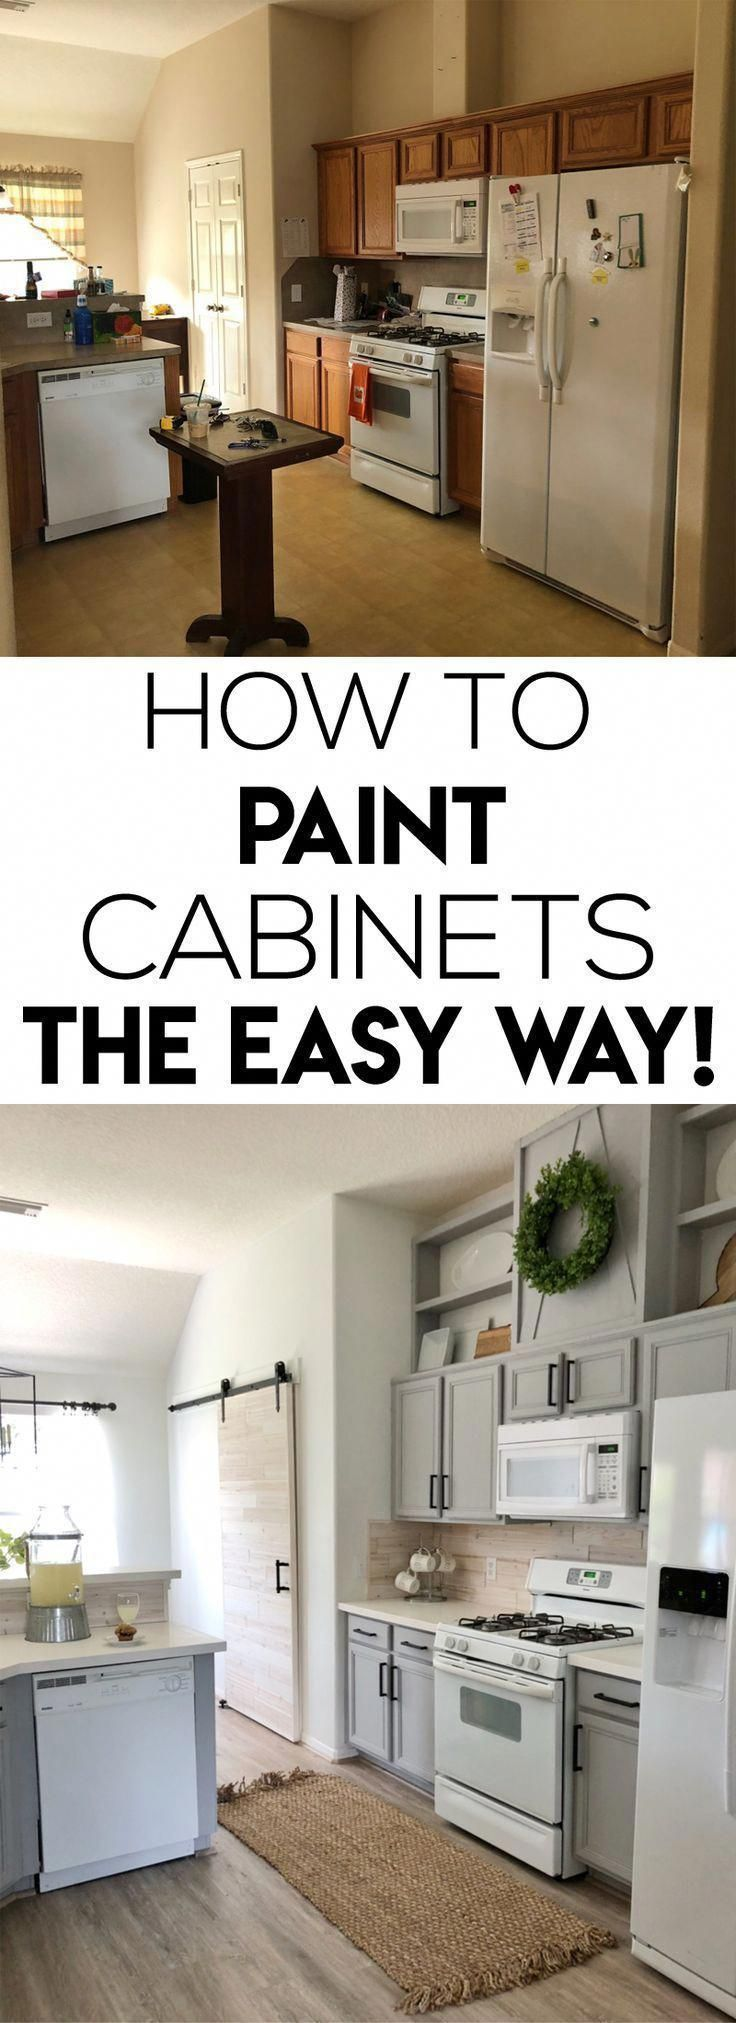 This Is One Of The Easiest Ways To Paint Kitchen Cabinets It Has Very Few Steps And It Dries Quickl New Kitchen Cabinets Kitchen Cabinets Kitchen Renovation